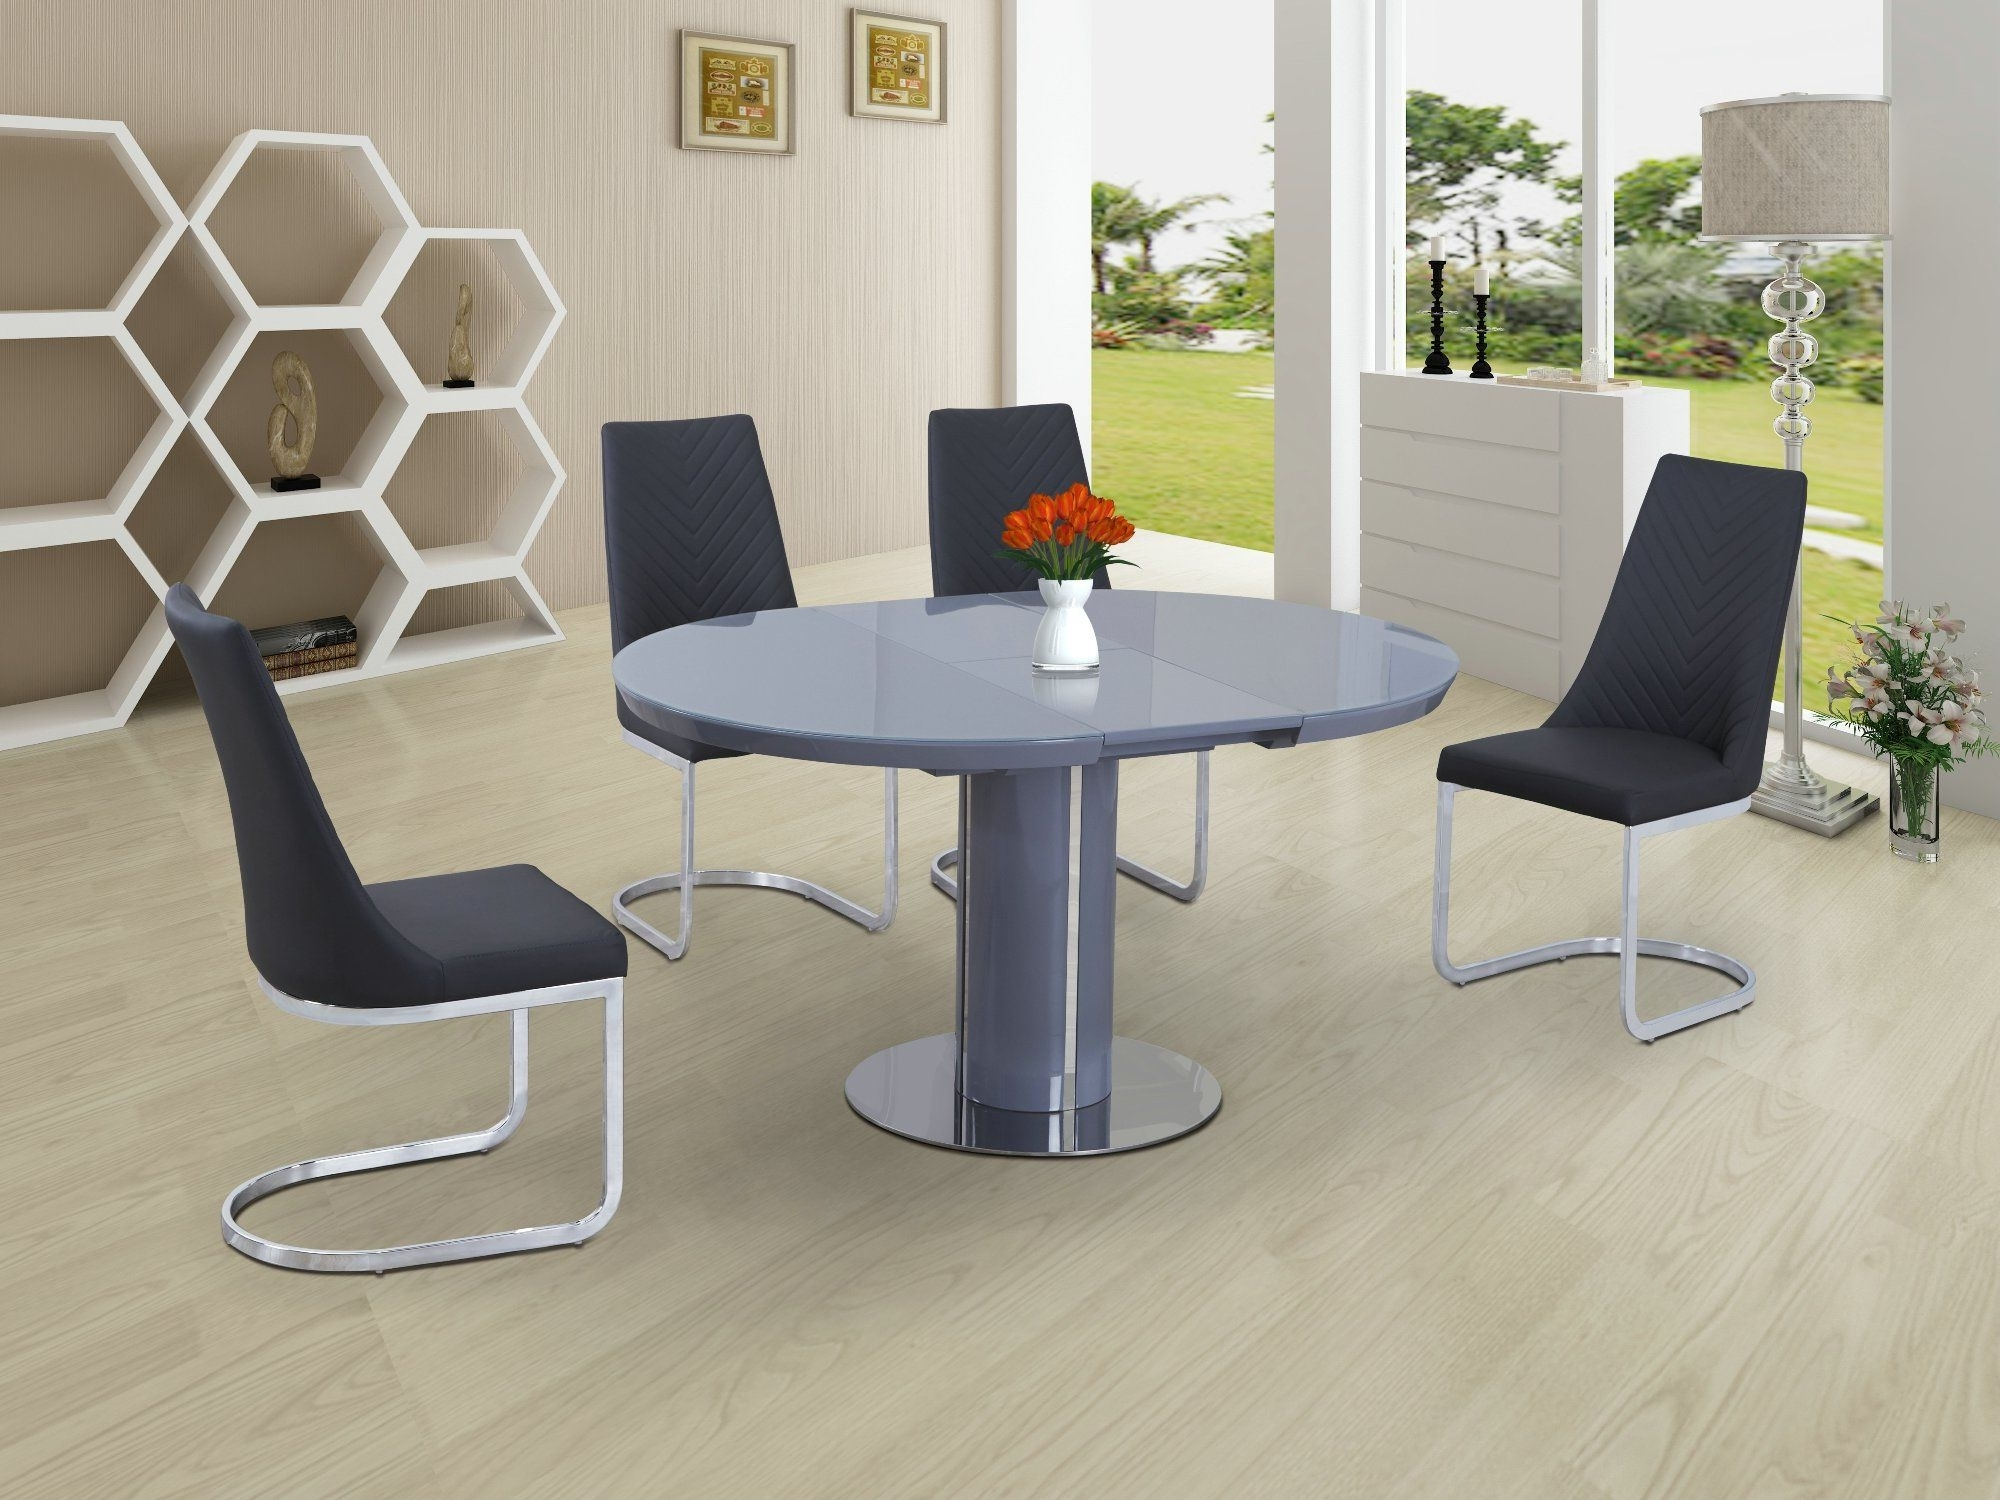 Most Popular Eclipse Round Oval Gloss & Glass Extending 110 To 145 Cm Dining Pertaining To Extending Gloss Dining Tables (Gallery 8 of 25)